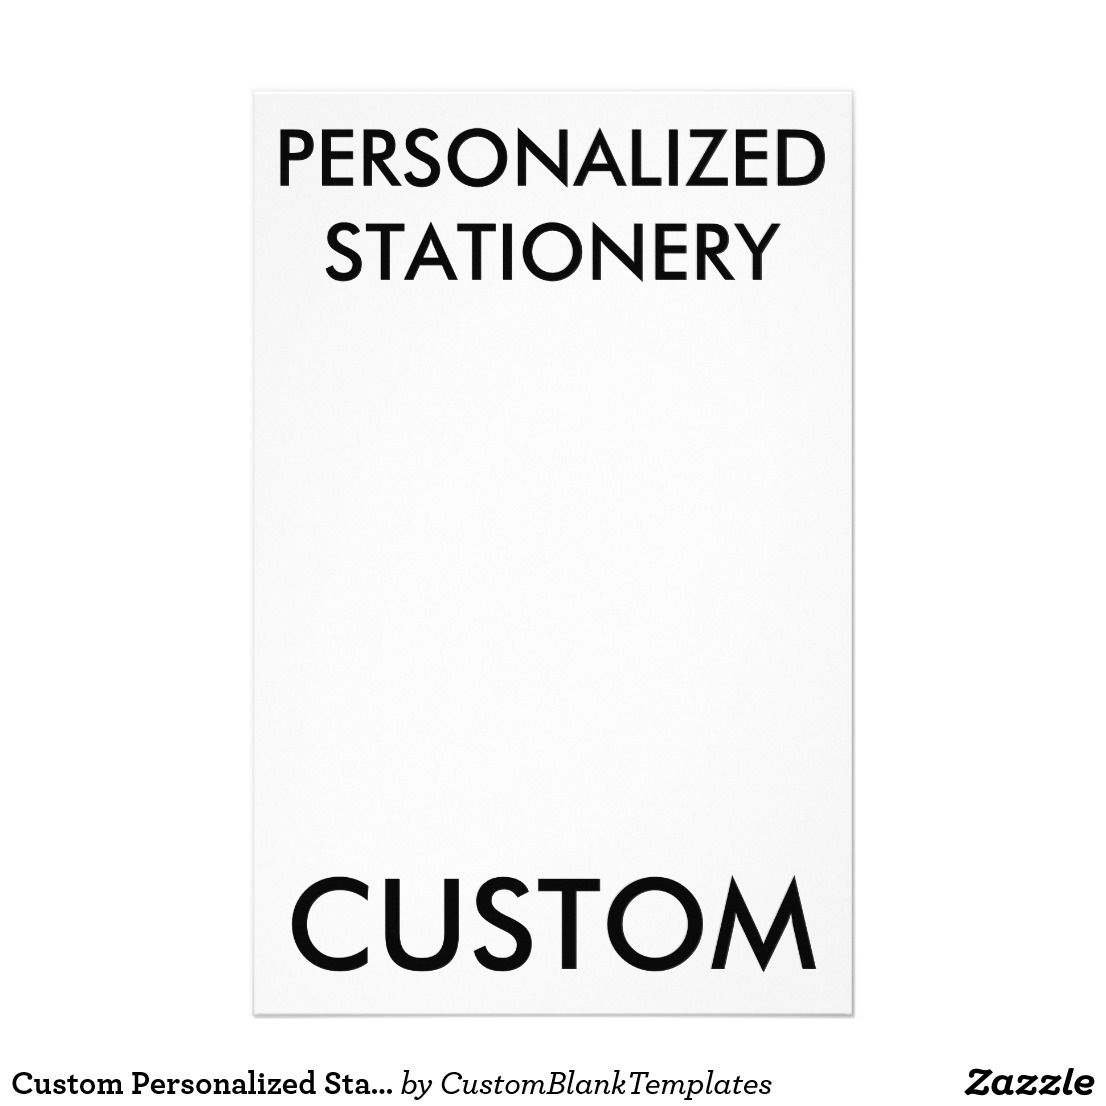 custom personalized stationery blank template personalized stationery